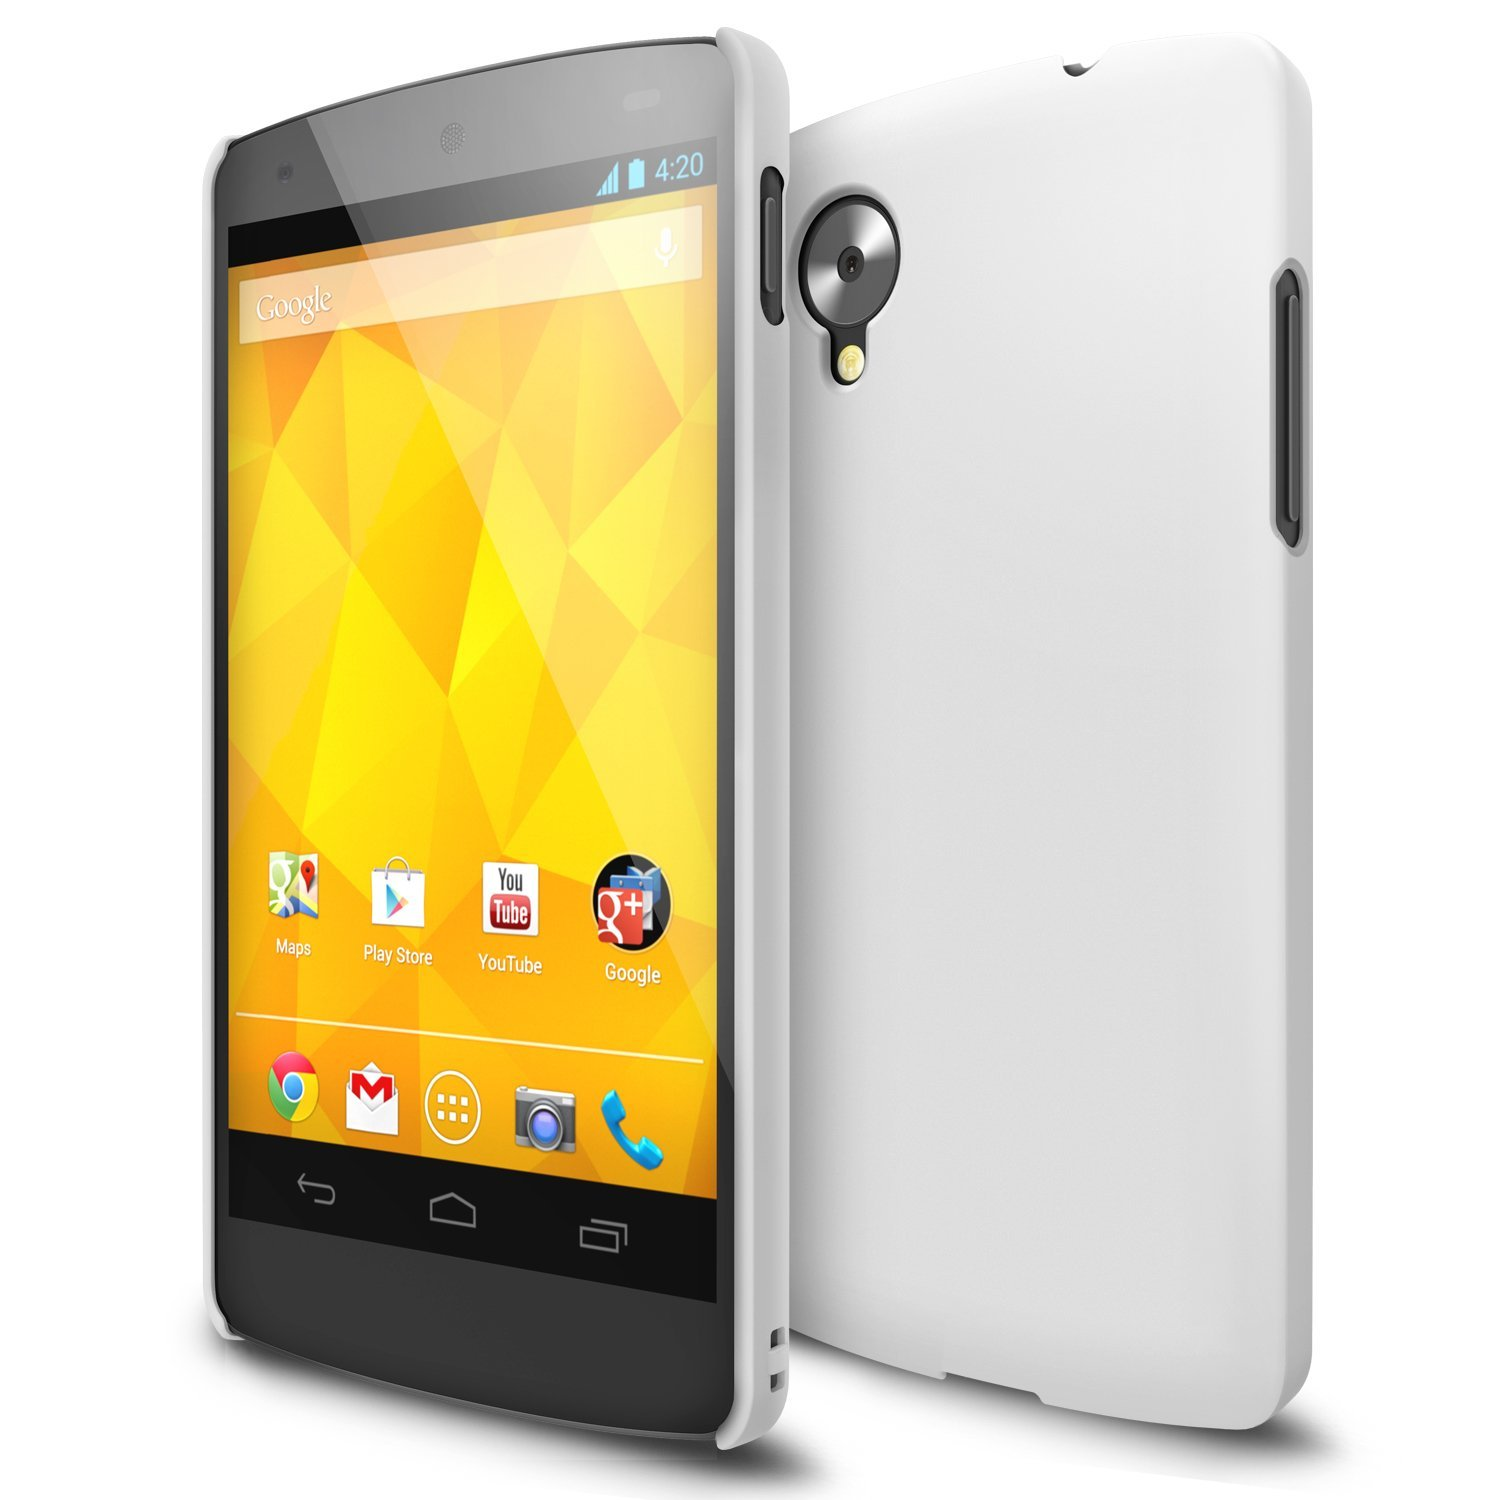 low priced 0a37a 9988a Amazon review points to lifting of Nexus 5 embargo on October 25 ...